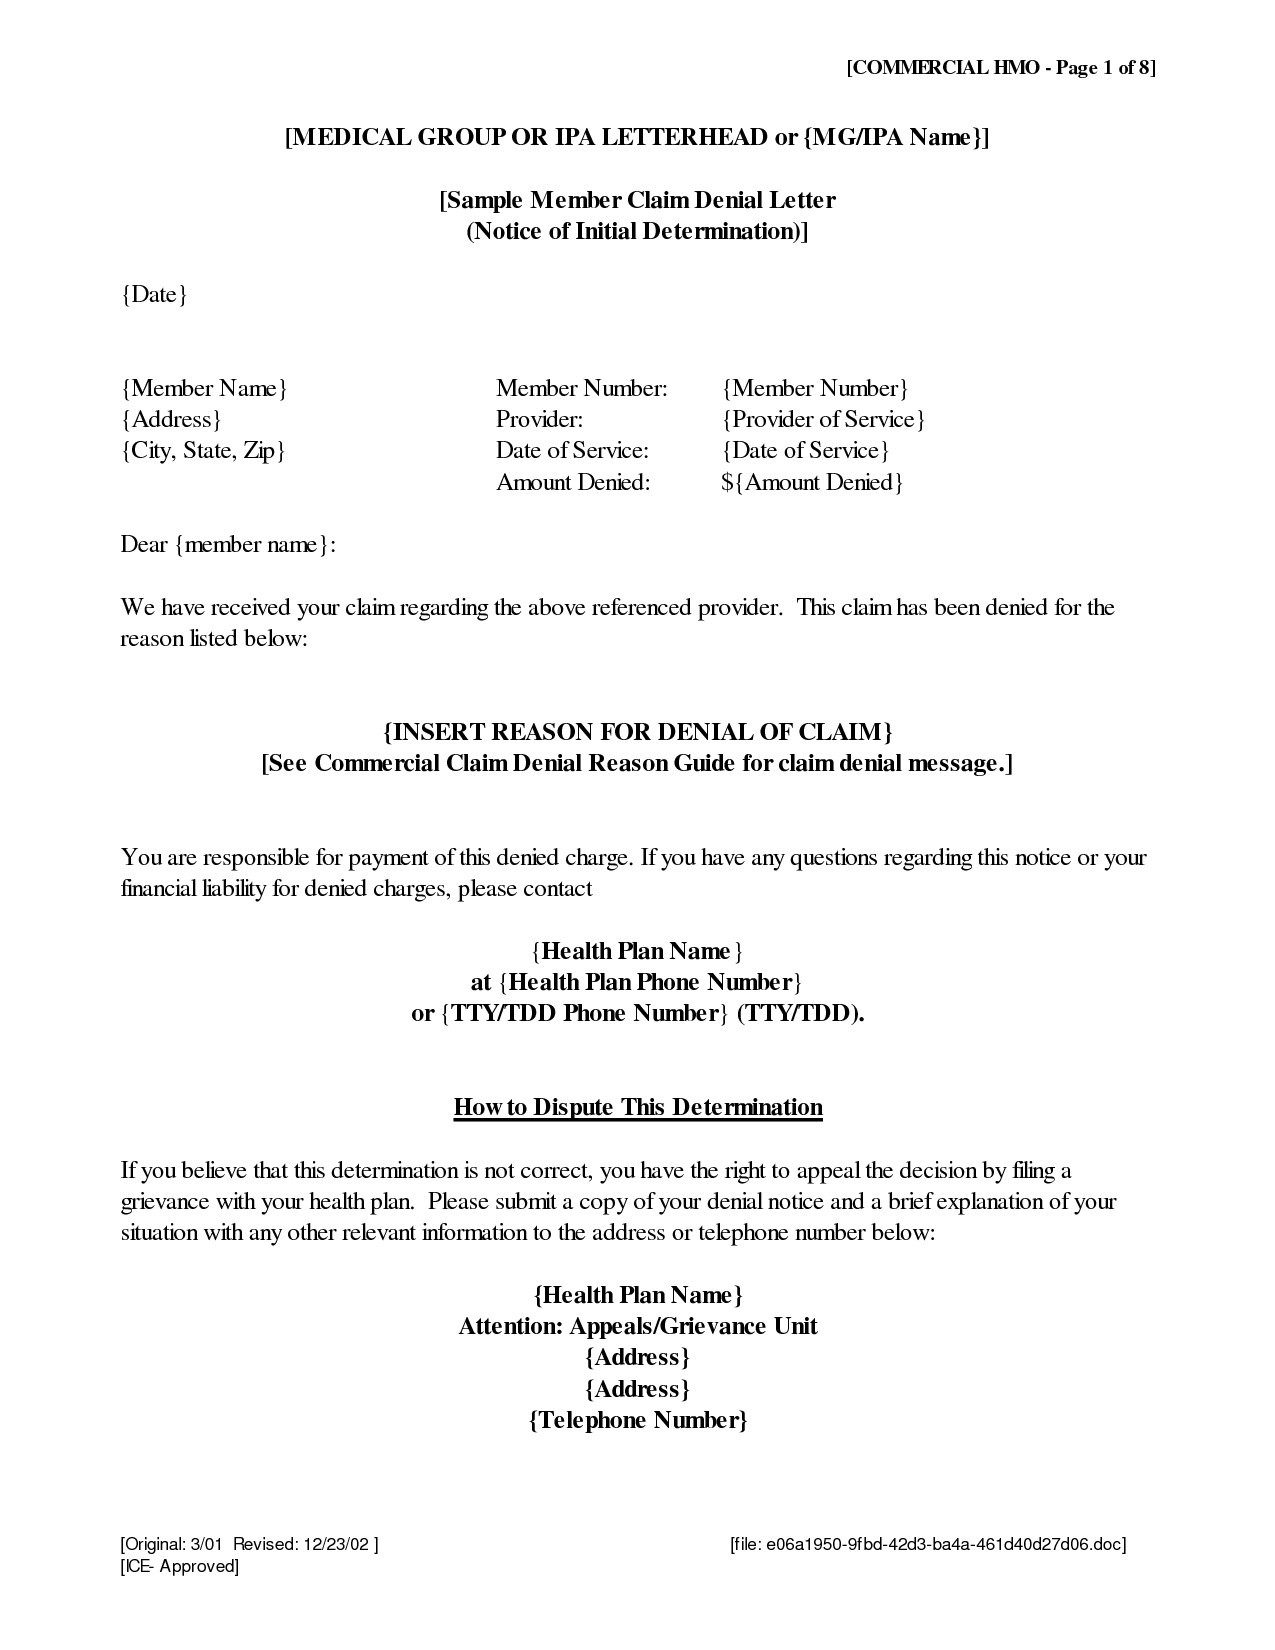 Bond Claim Letter Template - Appeal Letter Template Medical New Gallery Title Insurance Claim